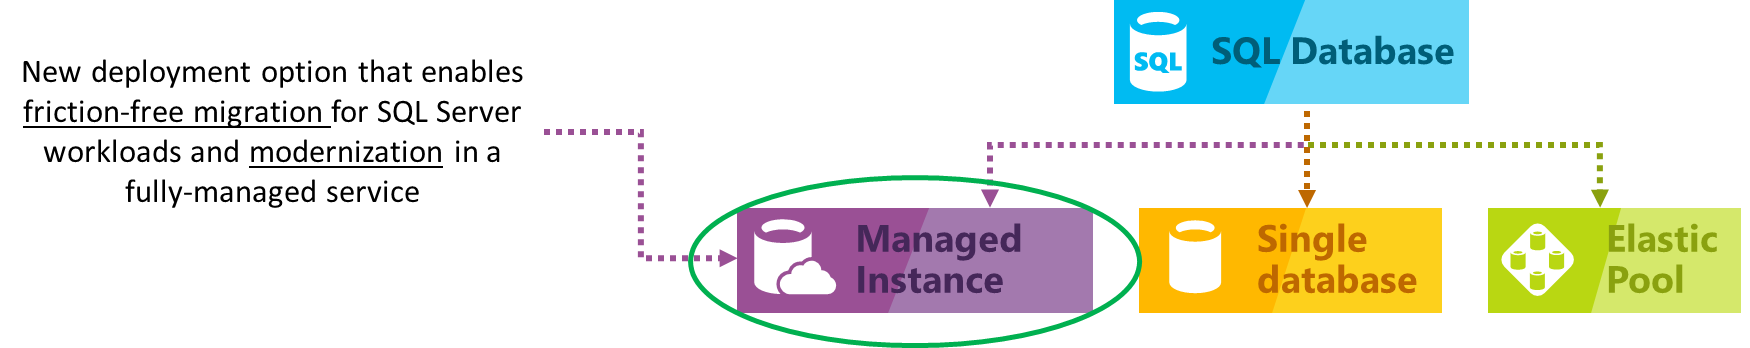 Managed Instance